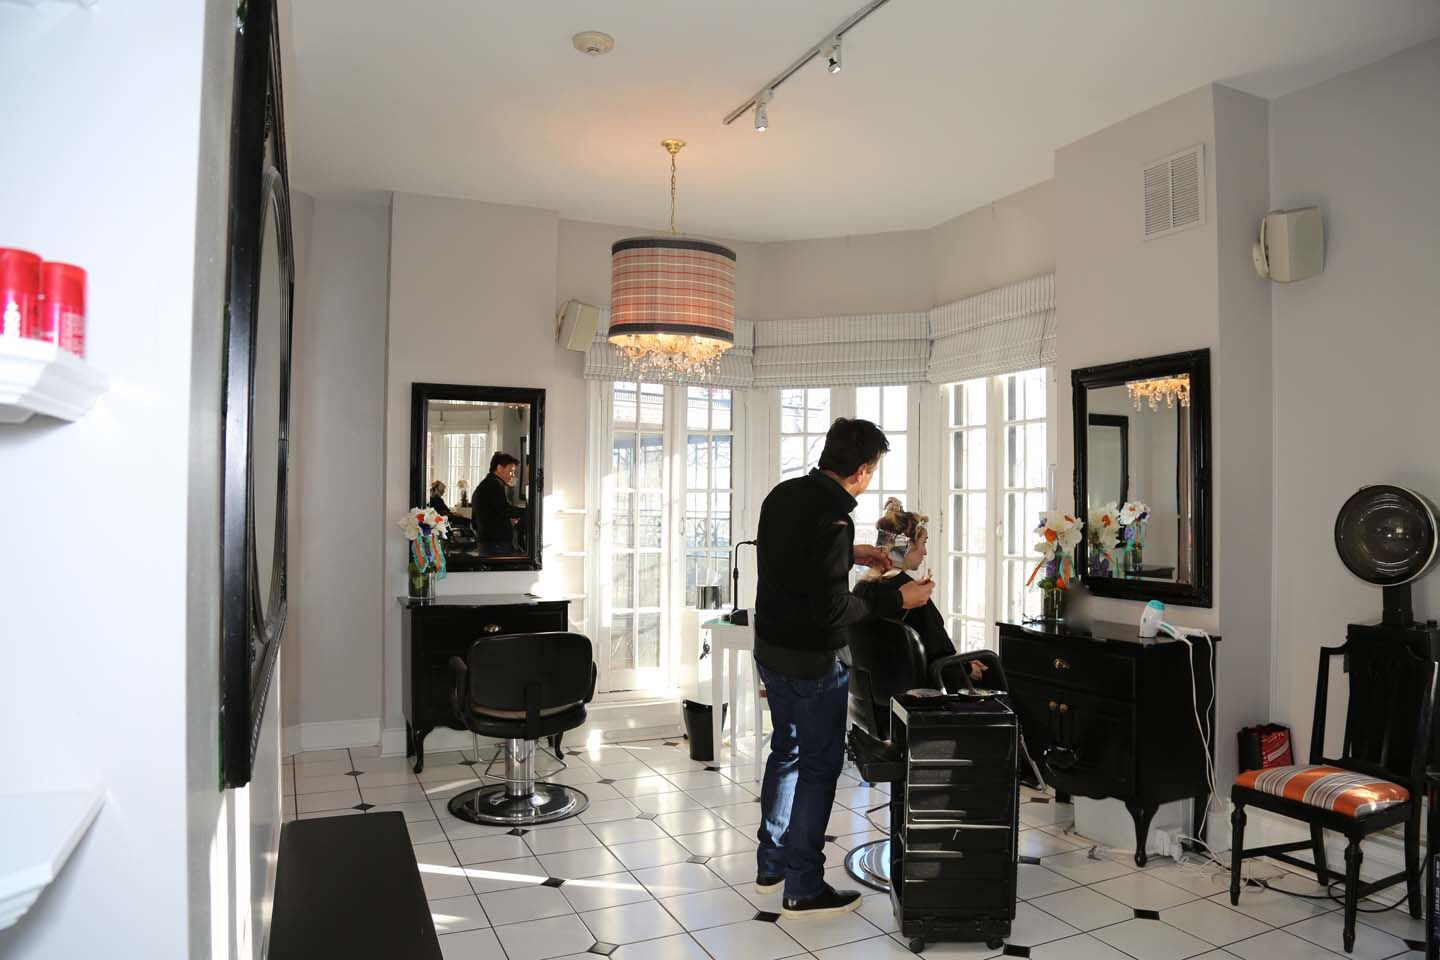 Hair  All of the stylists at Salon Duo are trained in advance cutting and coloring techniques. We combine classic sensibility and modern techniques to bring out the best in your hair and you. All our stylists are not only trained in technique, but spend the time to help you achieve the best look just for you.